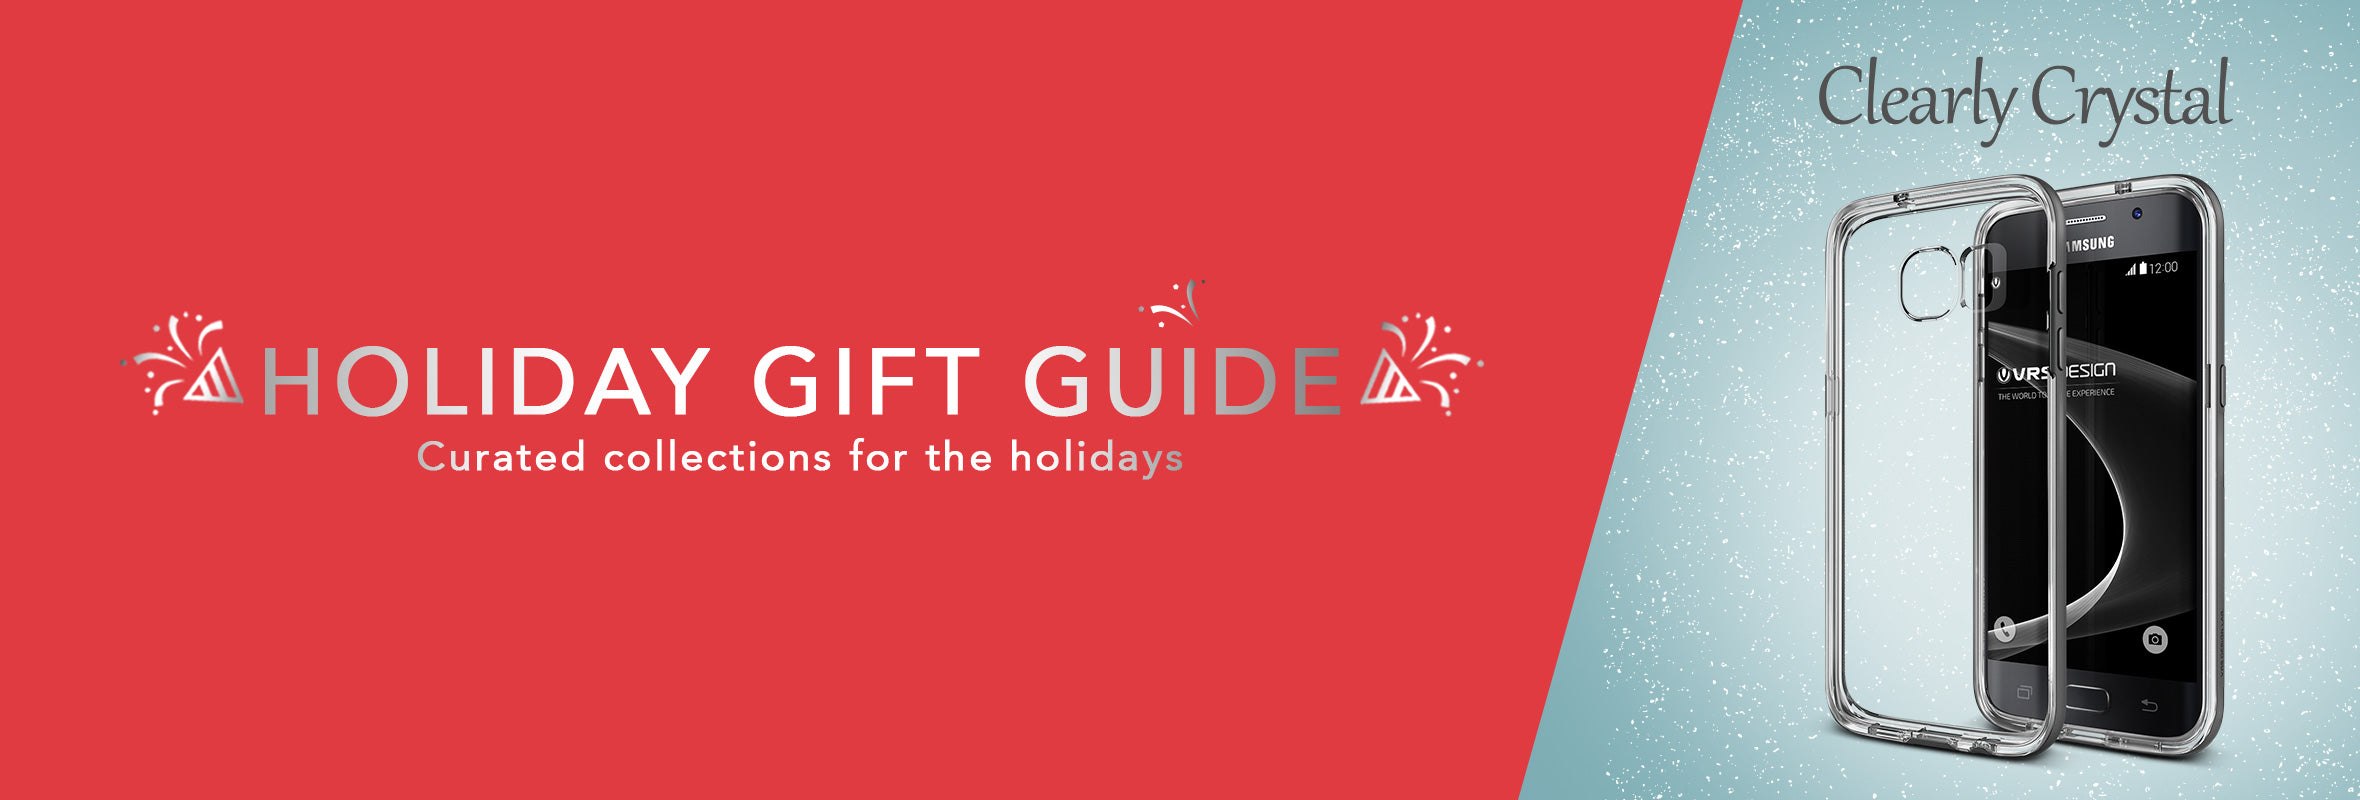 Holiday Gift Guide - Clearly Crystal